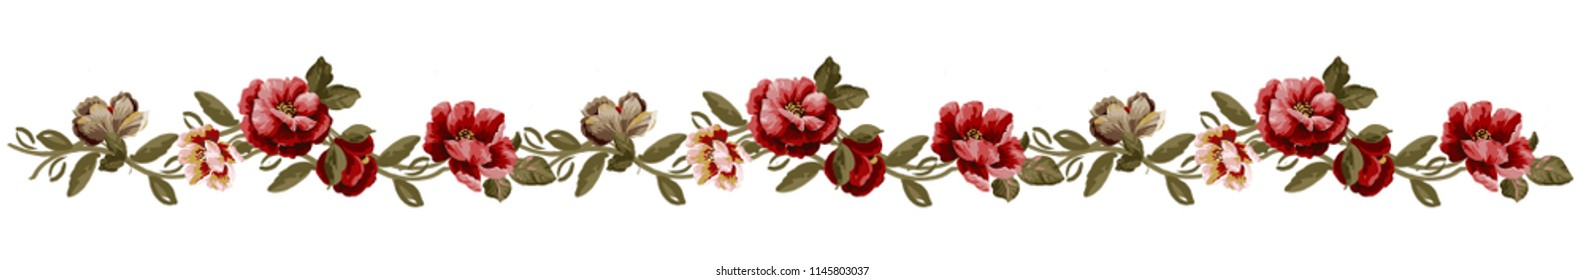 romantic beautiful floral repeat pattern. embroidery or print. border style. seamless flower pattern.